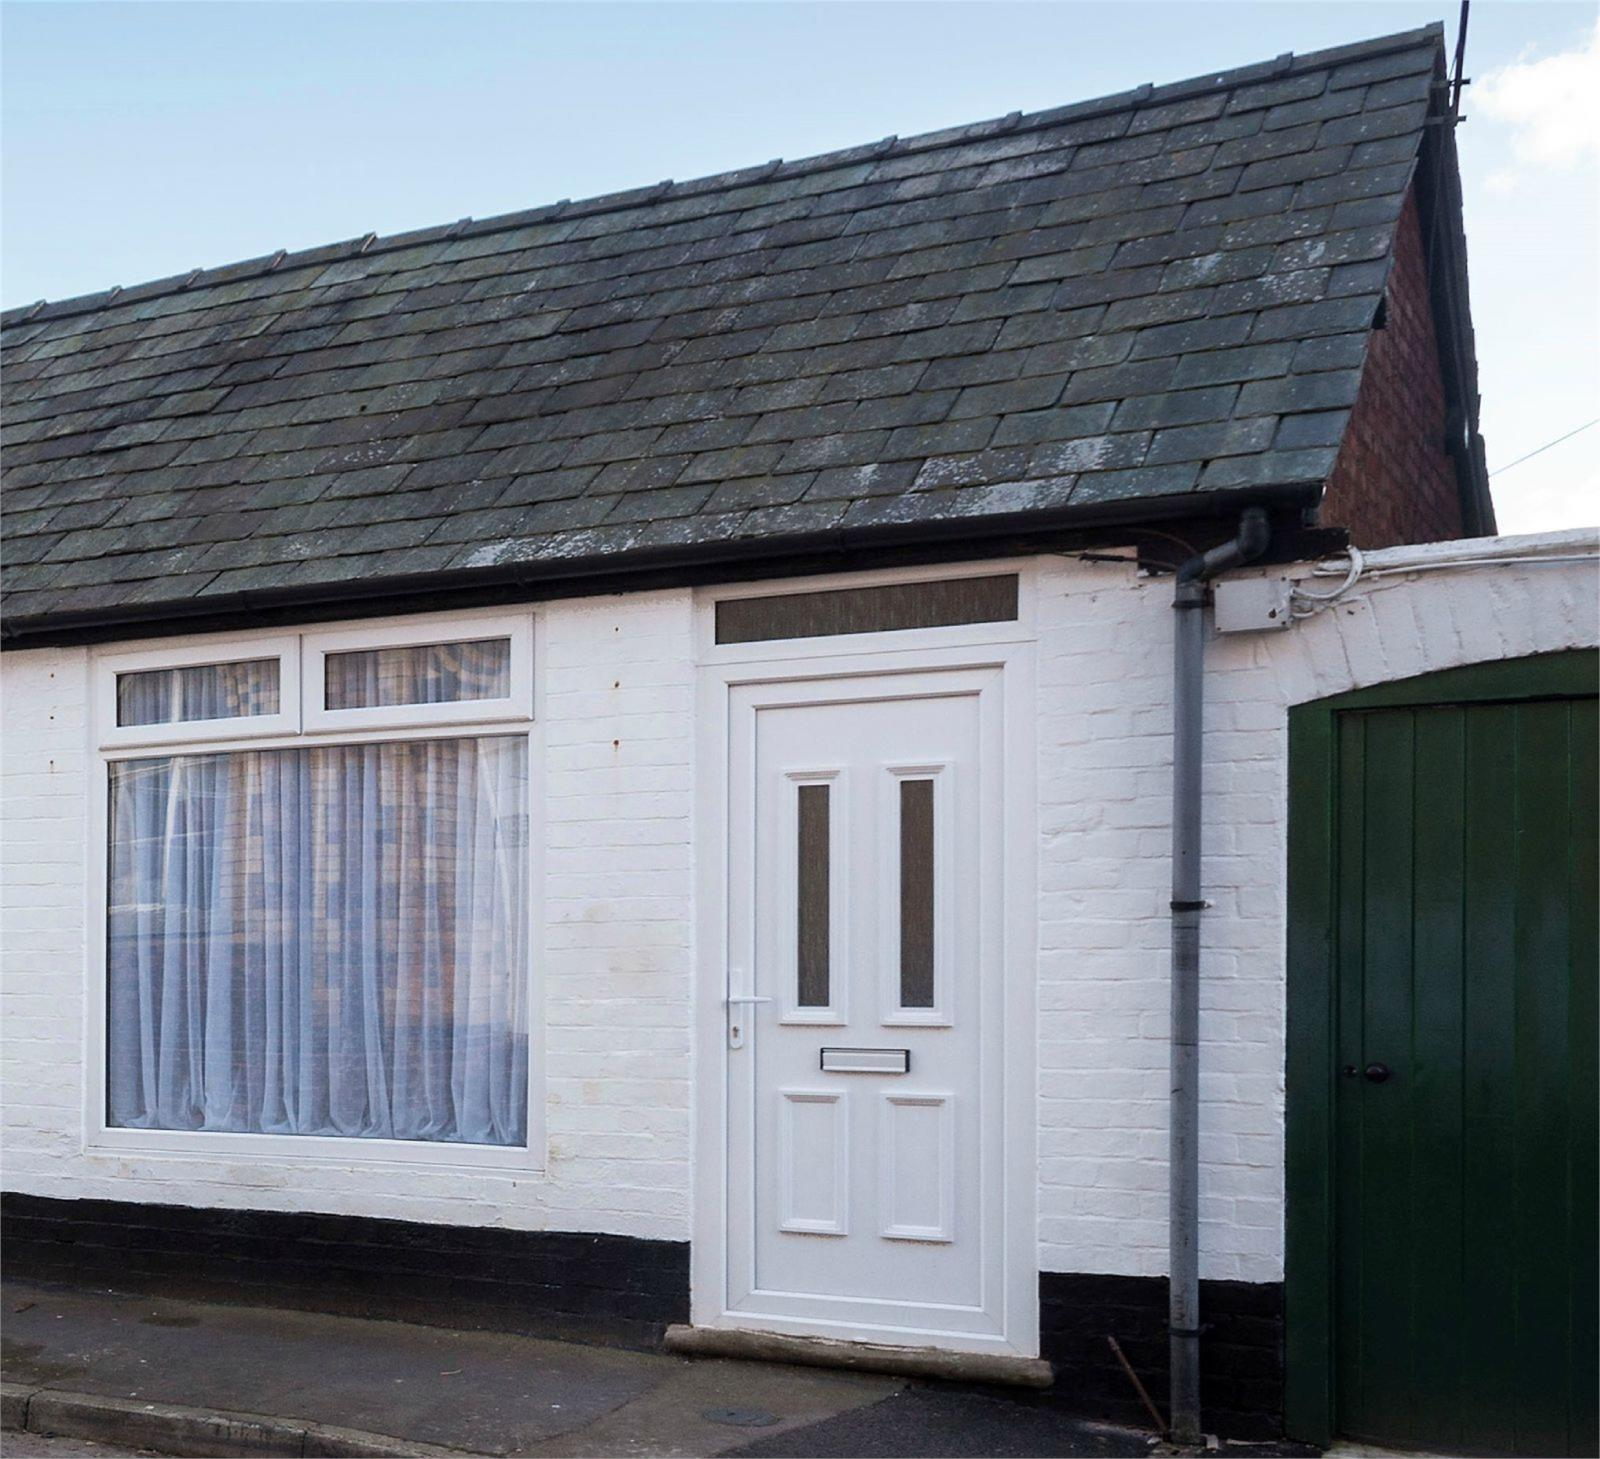 1 Bedroom Semi Detached Bungalow for sale in 8 Dale Street, Craven Arms, Shropshire, SY7